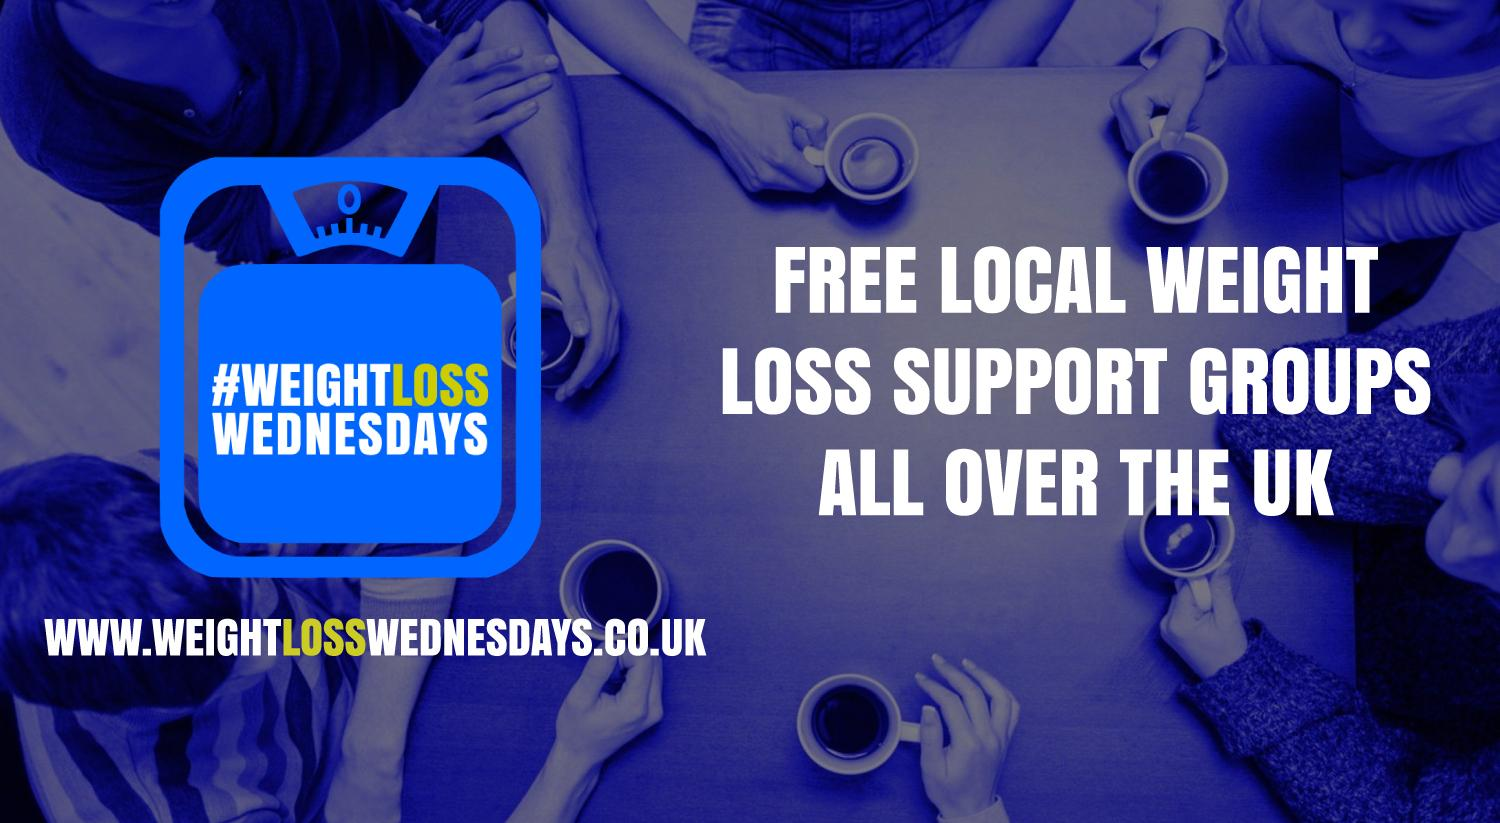 WEIGHT LOSS WEDNESDAYS! Free weekly support group in Newton Abbot